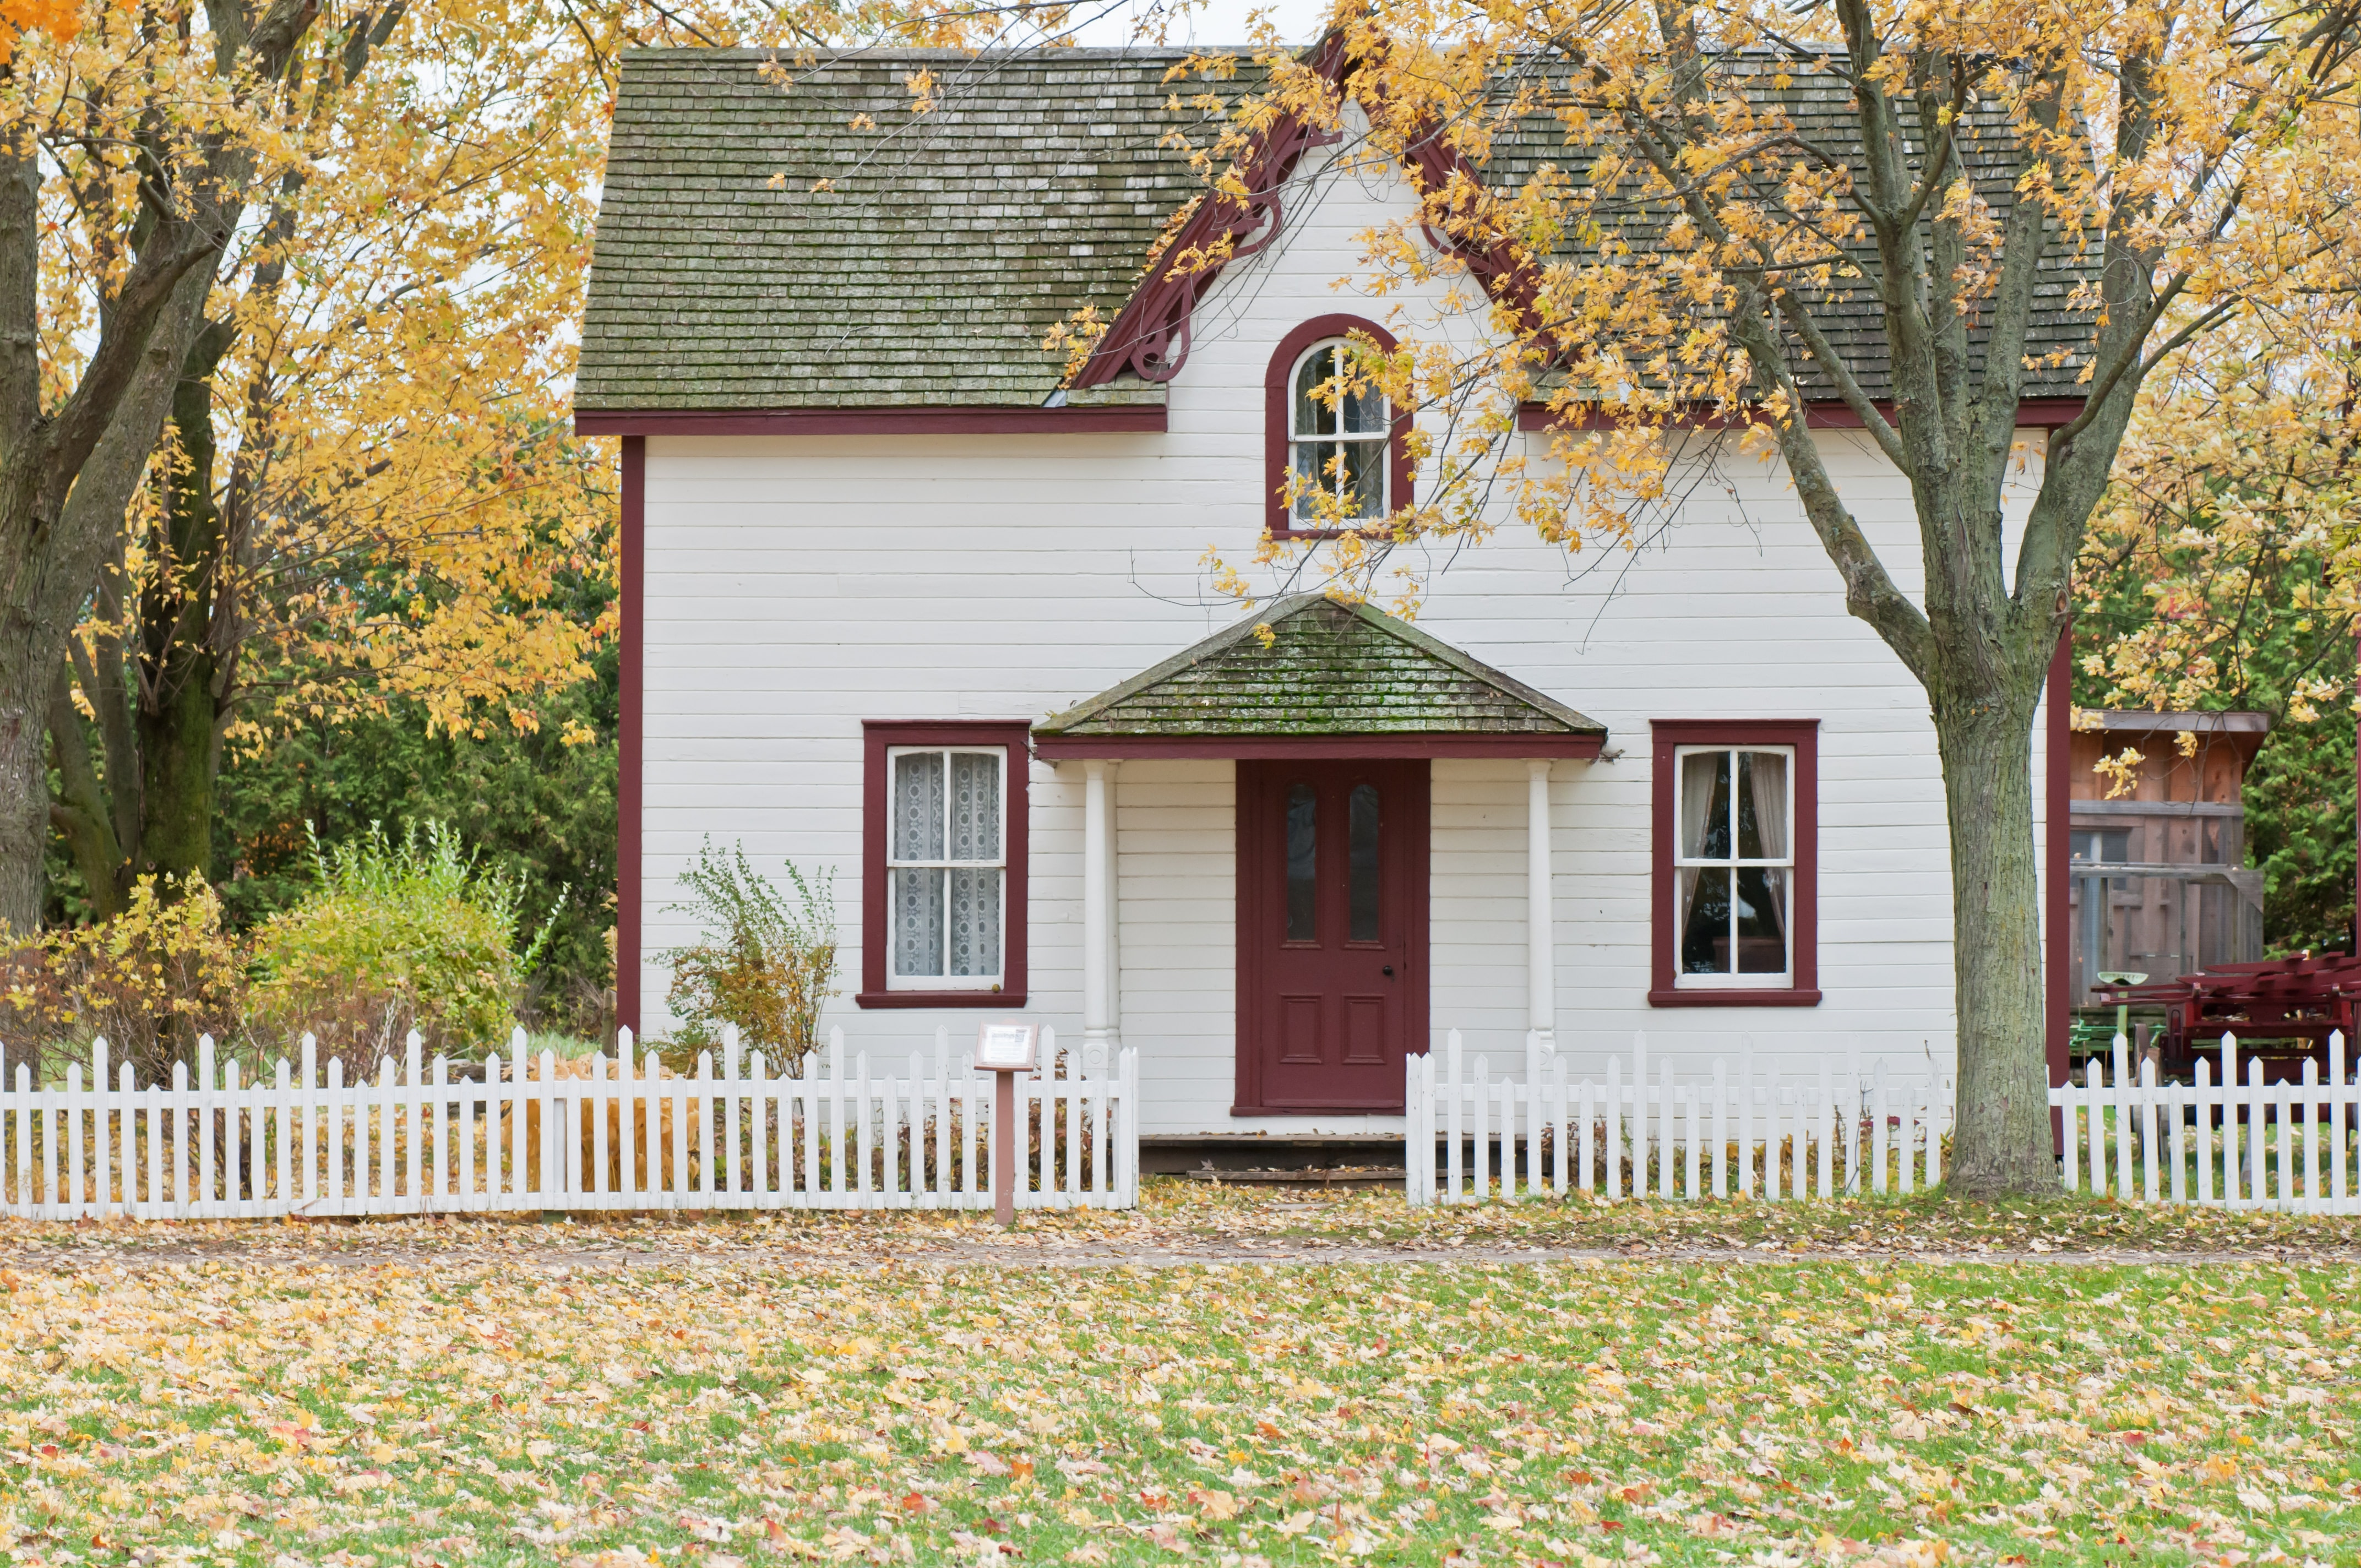 House and garden in autumn.